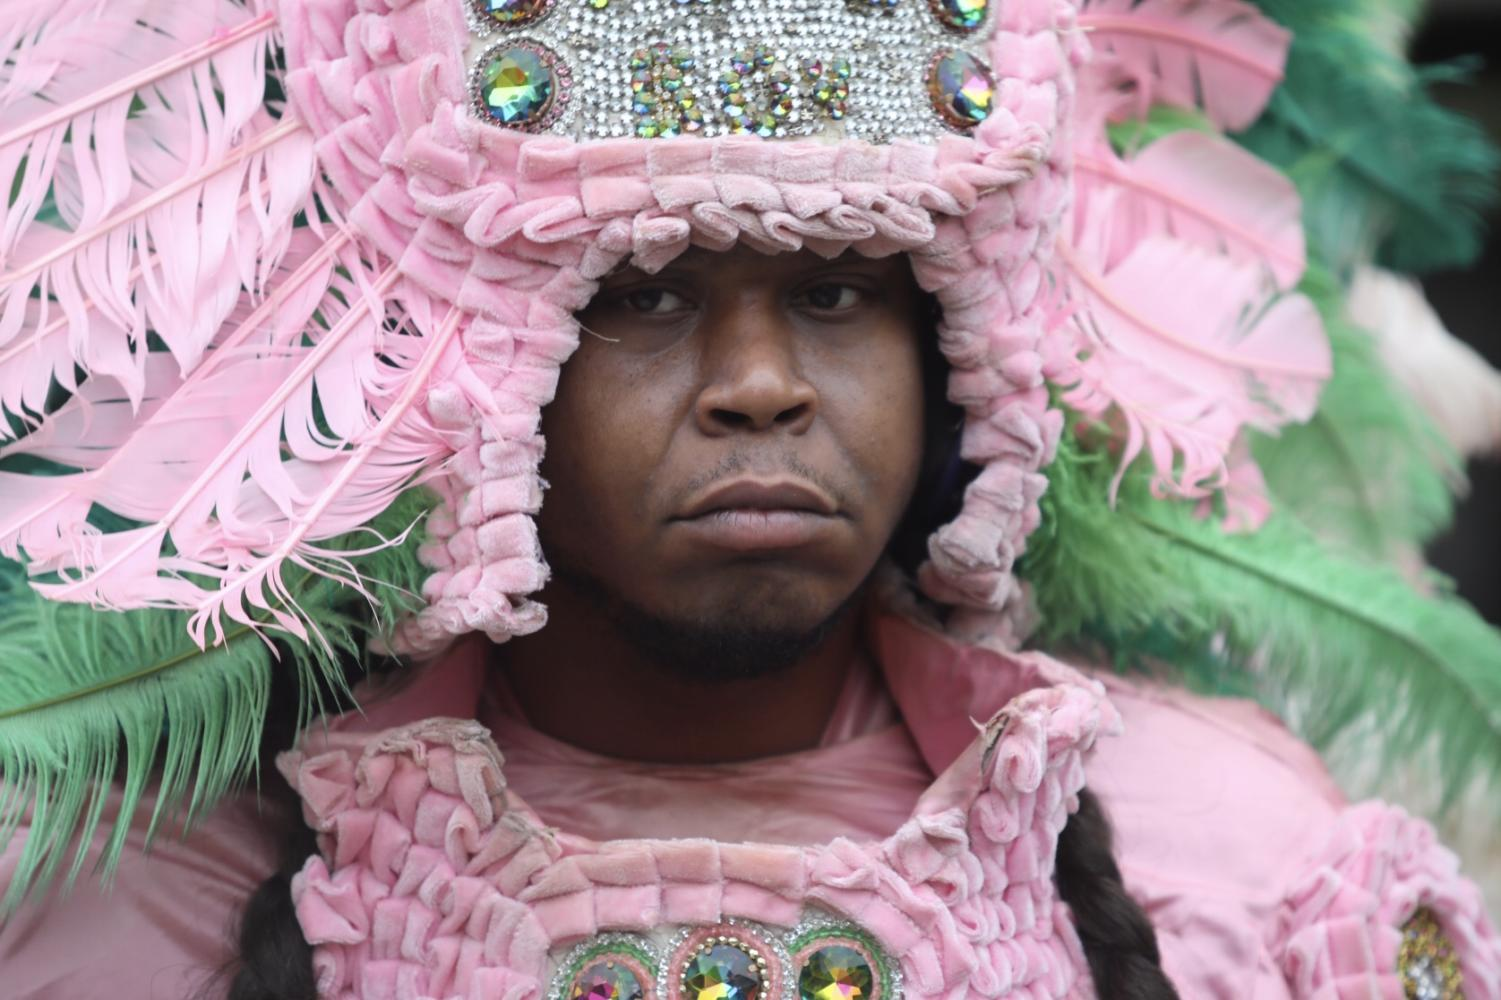 A member of the Wild Tchoupitoulas wears his traditional outfit for 3rd Friday in the Peace Quad on Feb. 15, 2019. Mardi Gras Indians have a tradition rooted in the holiday.